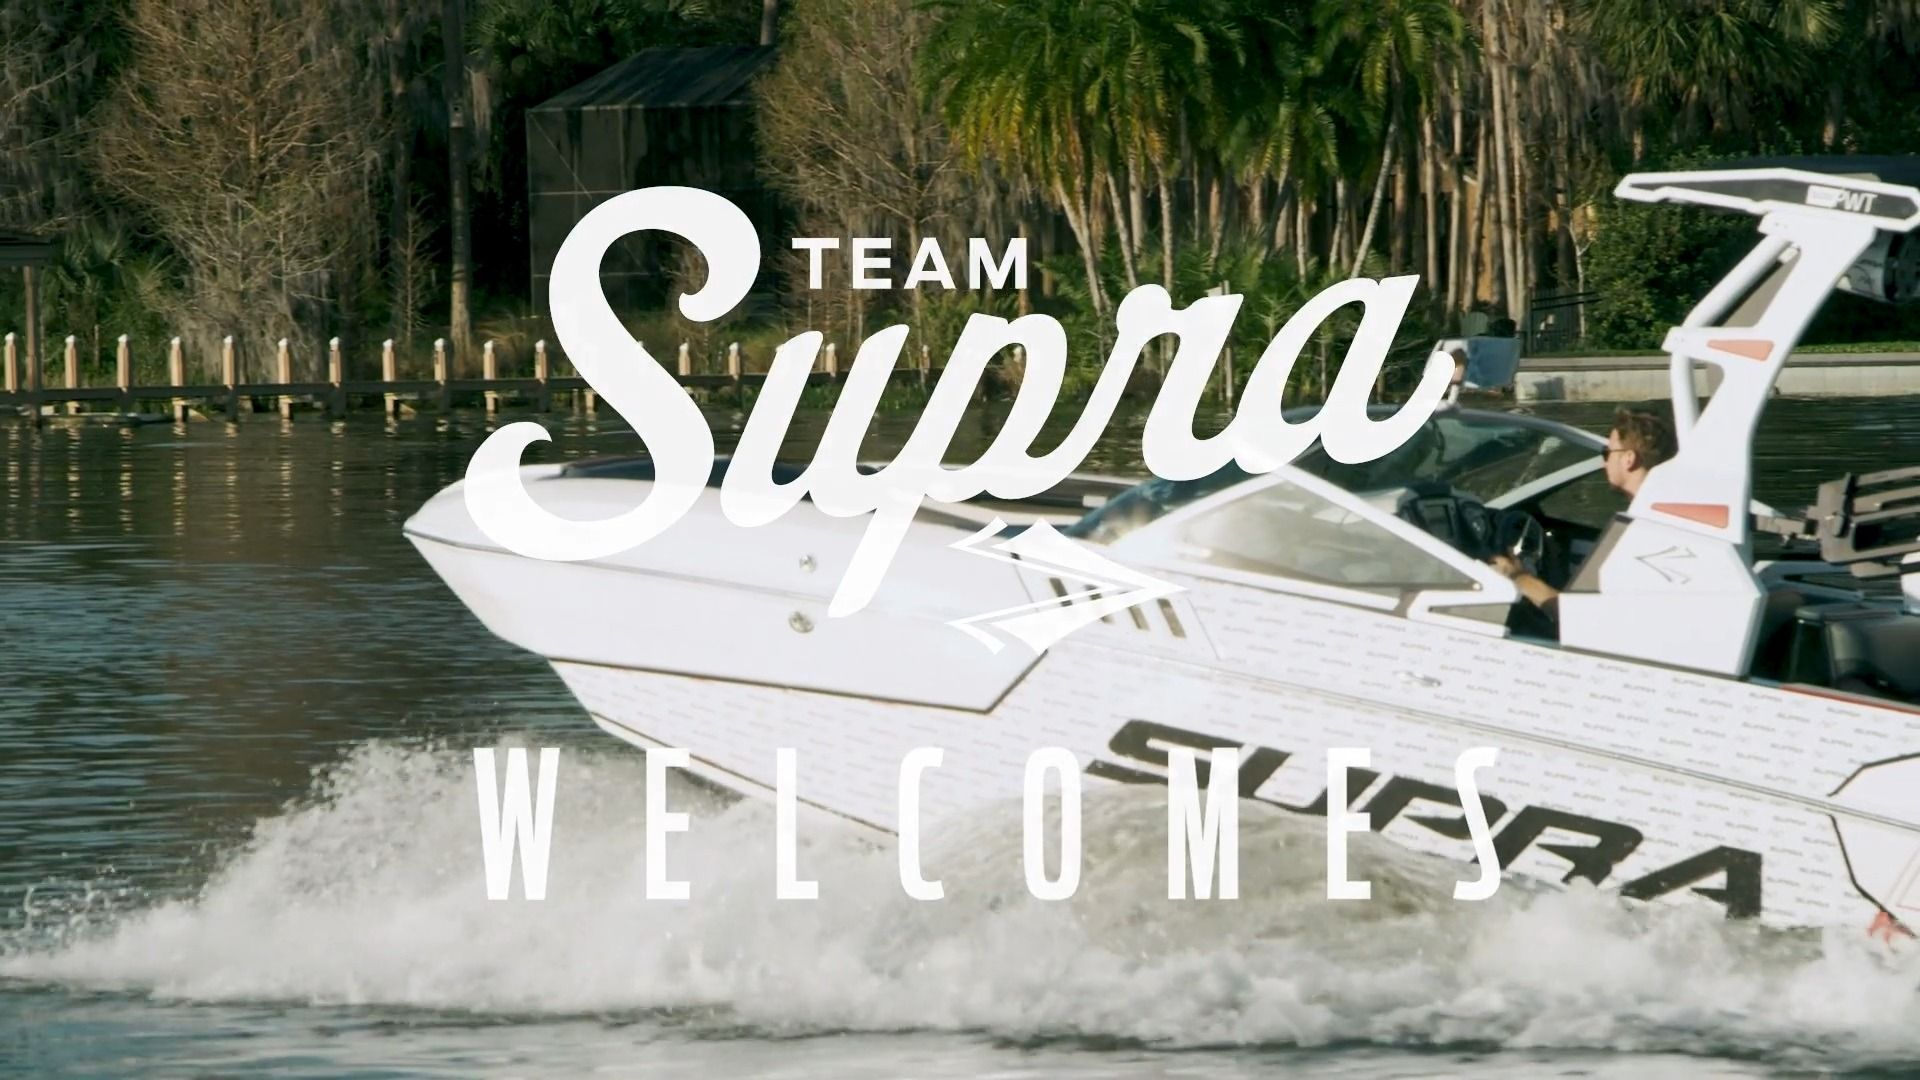 TYLER HIGHAM / WELCOME TO SUPRA